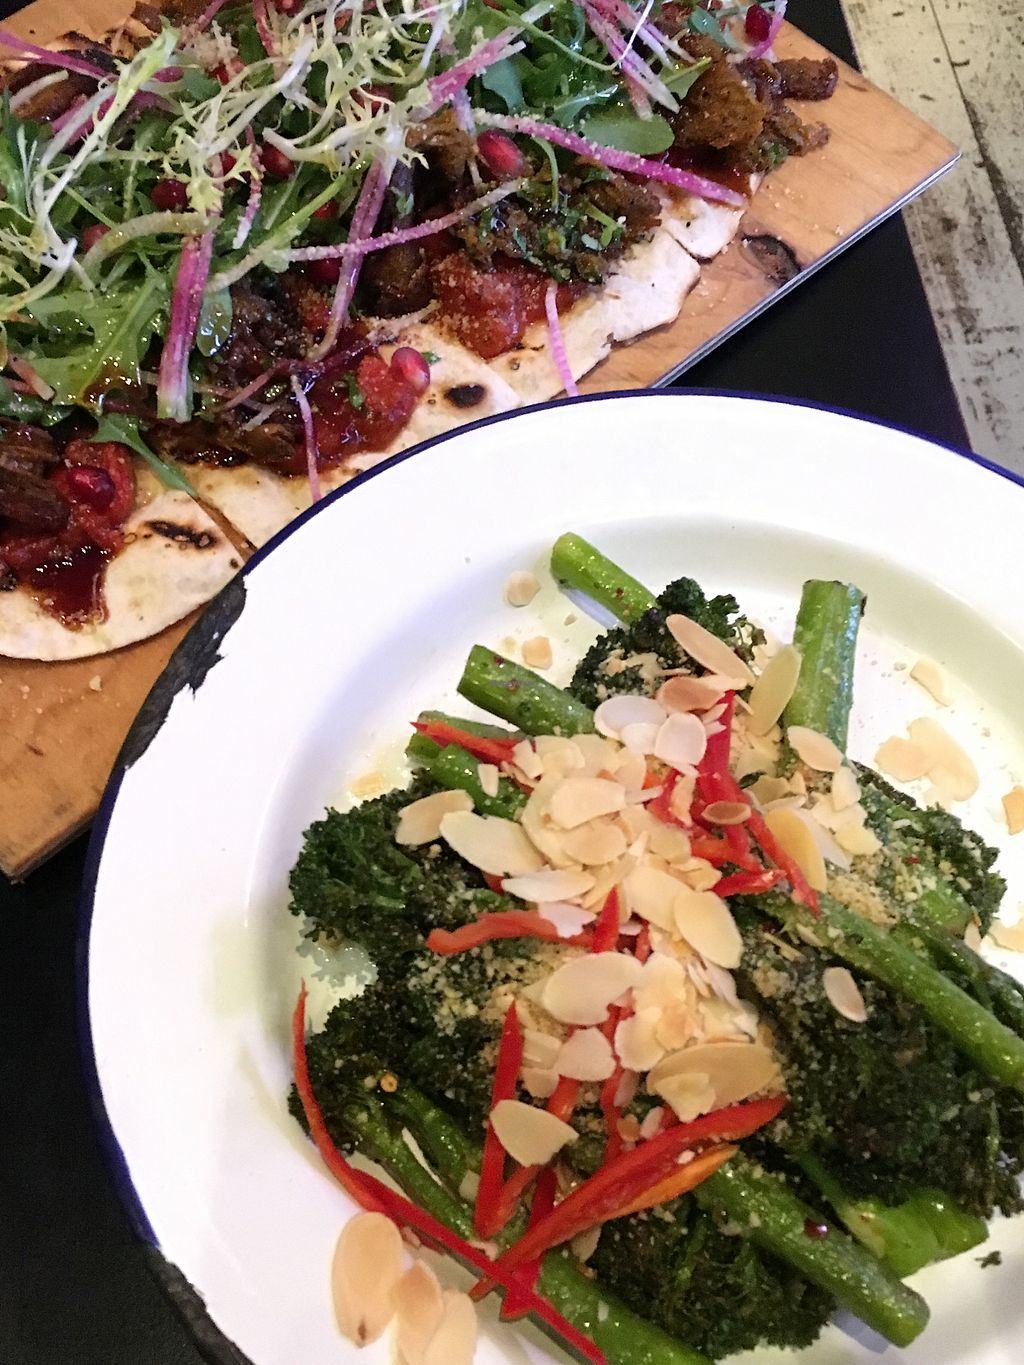 """Photo of The Cock  by <a href=""""/members/profile/SeitanSeitanSeitan"""">SeitanSeitanSeitan</a> <br/>Broccolini and flatbread with veef.  <br/> January 6, 2018  - <a href='/contact/abuse/image/58801/343597'>Report</a>"""